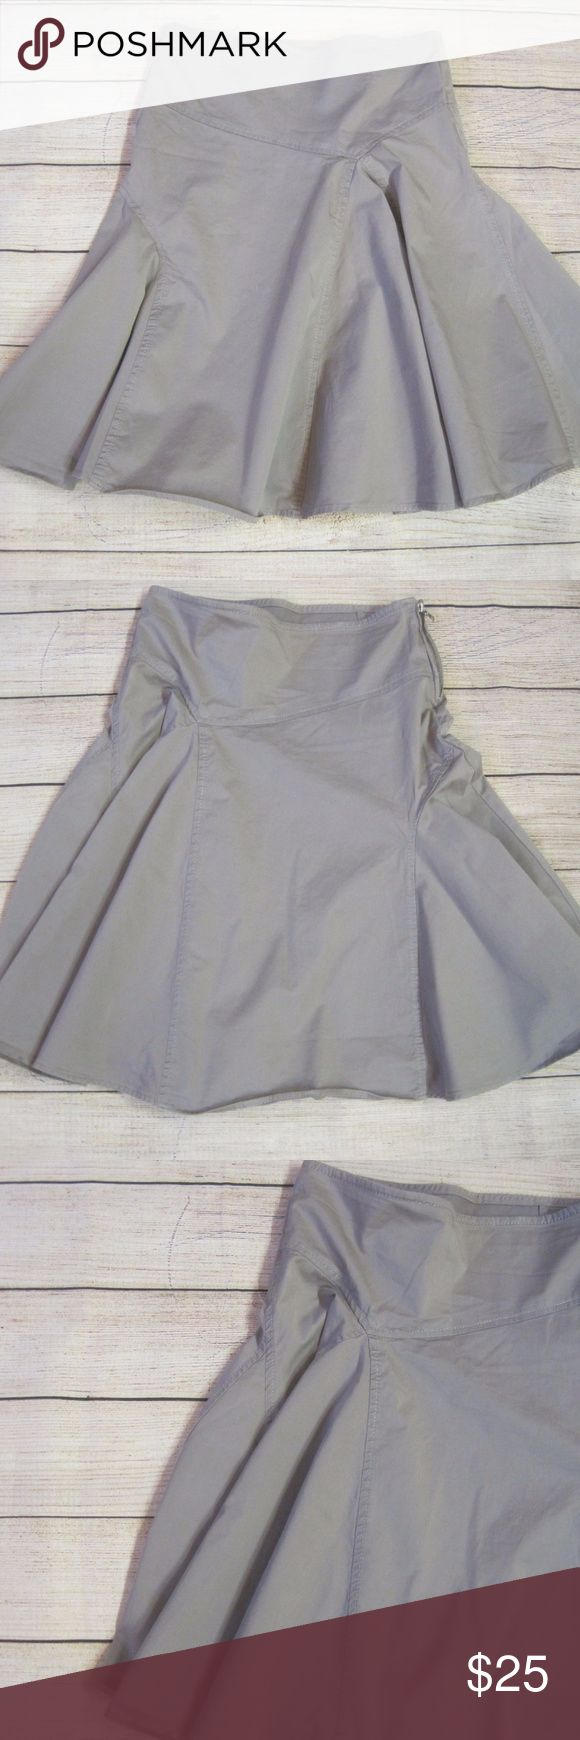 """United Colors of Benetton Skirt Flare Panel Gray United Colors of Benetton Skirt Womens Sz 40 Pleated Panel Flare Gray Casual  waist 32"""" length 22.5""""  A1405kt10 United Colors Of Benetton Skirts"""